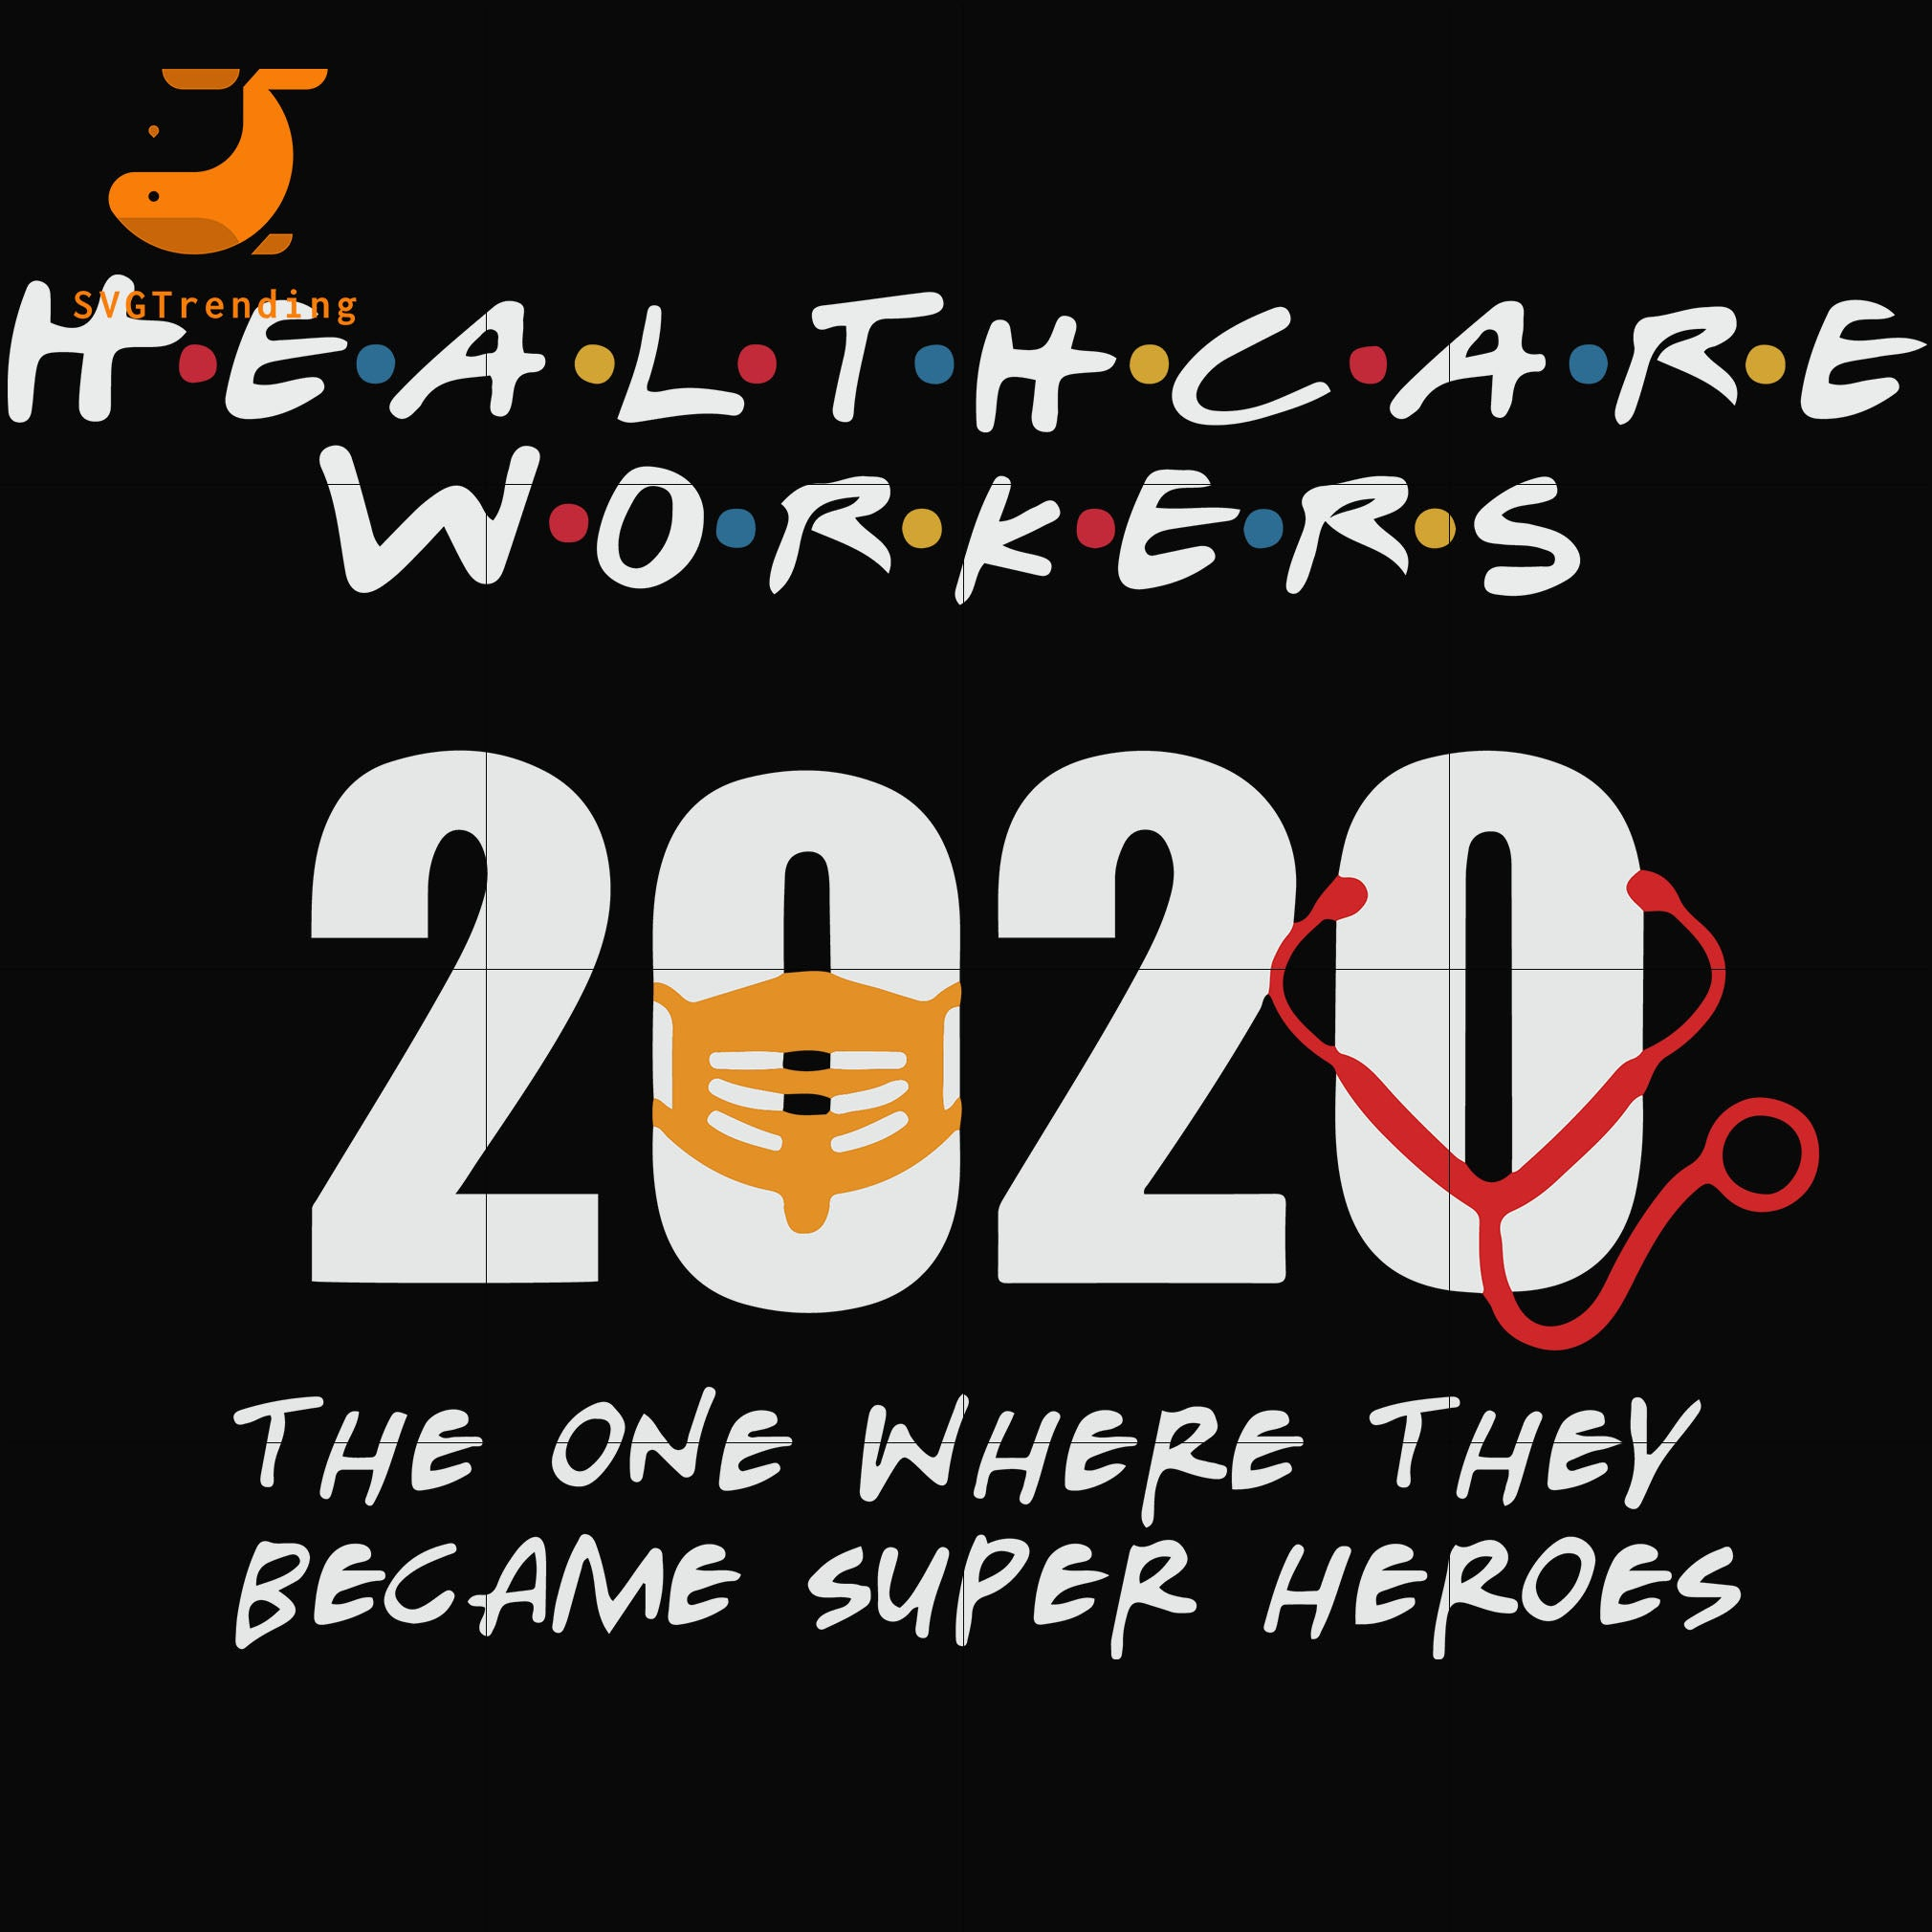 Healthcare workers the one where they became super heroes svg ,dxf,eps,png digital file